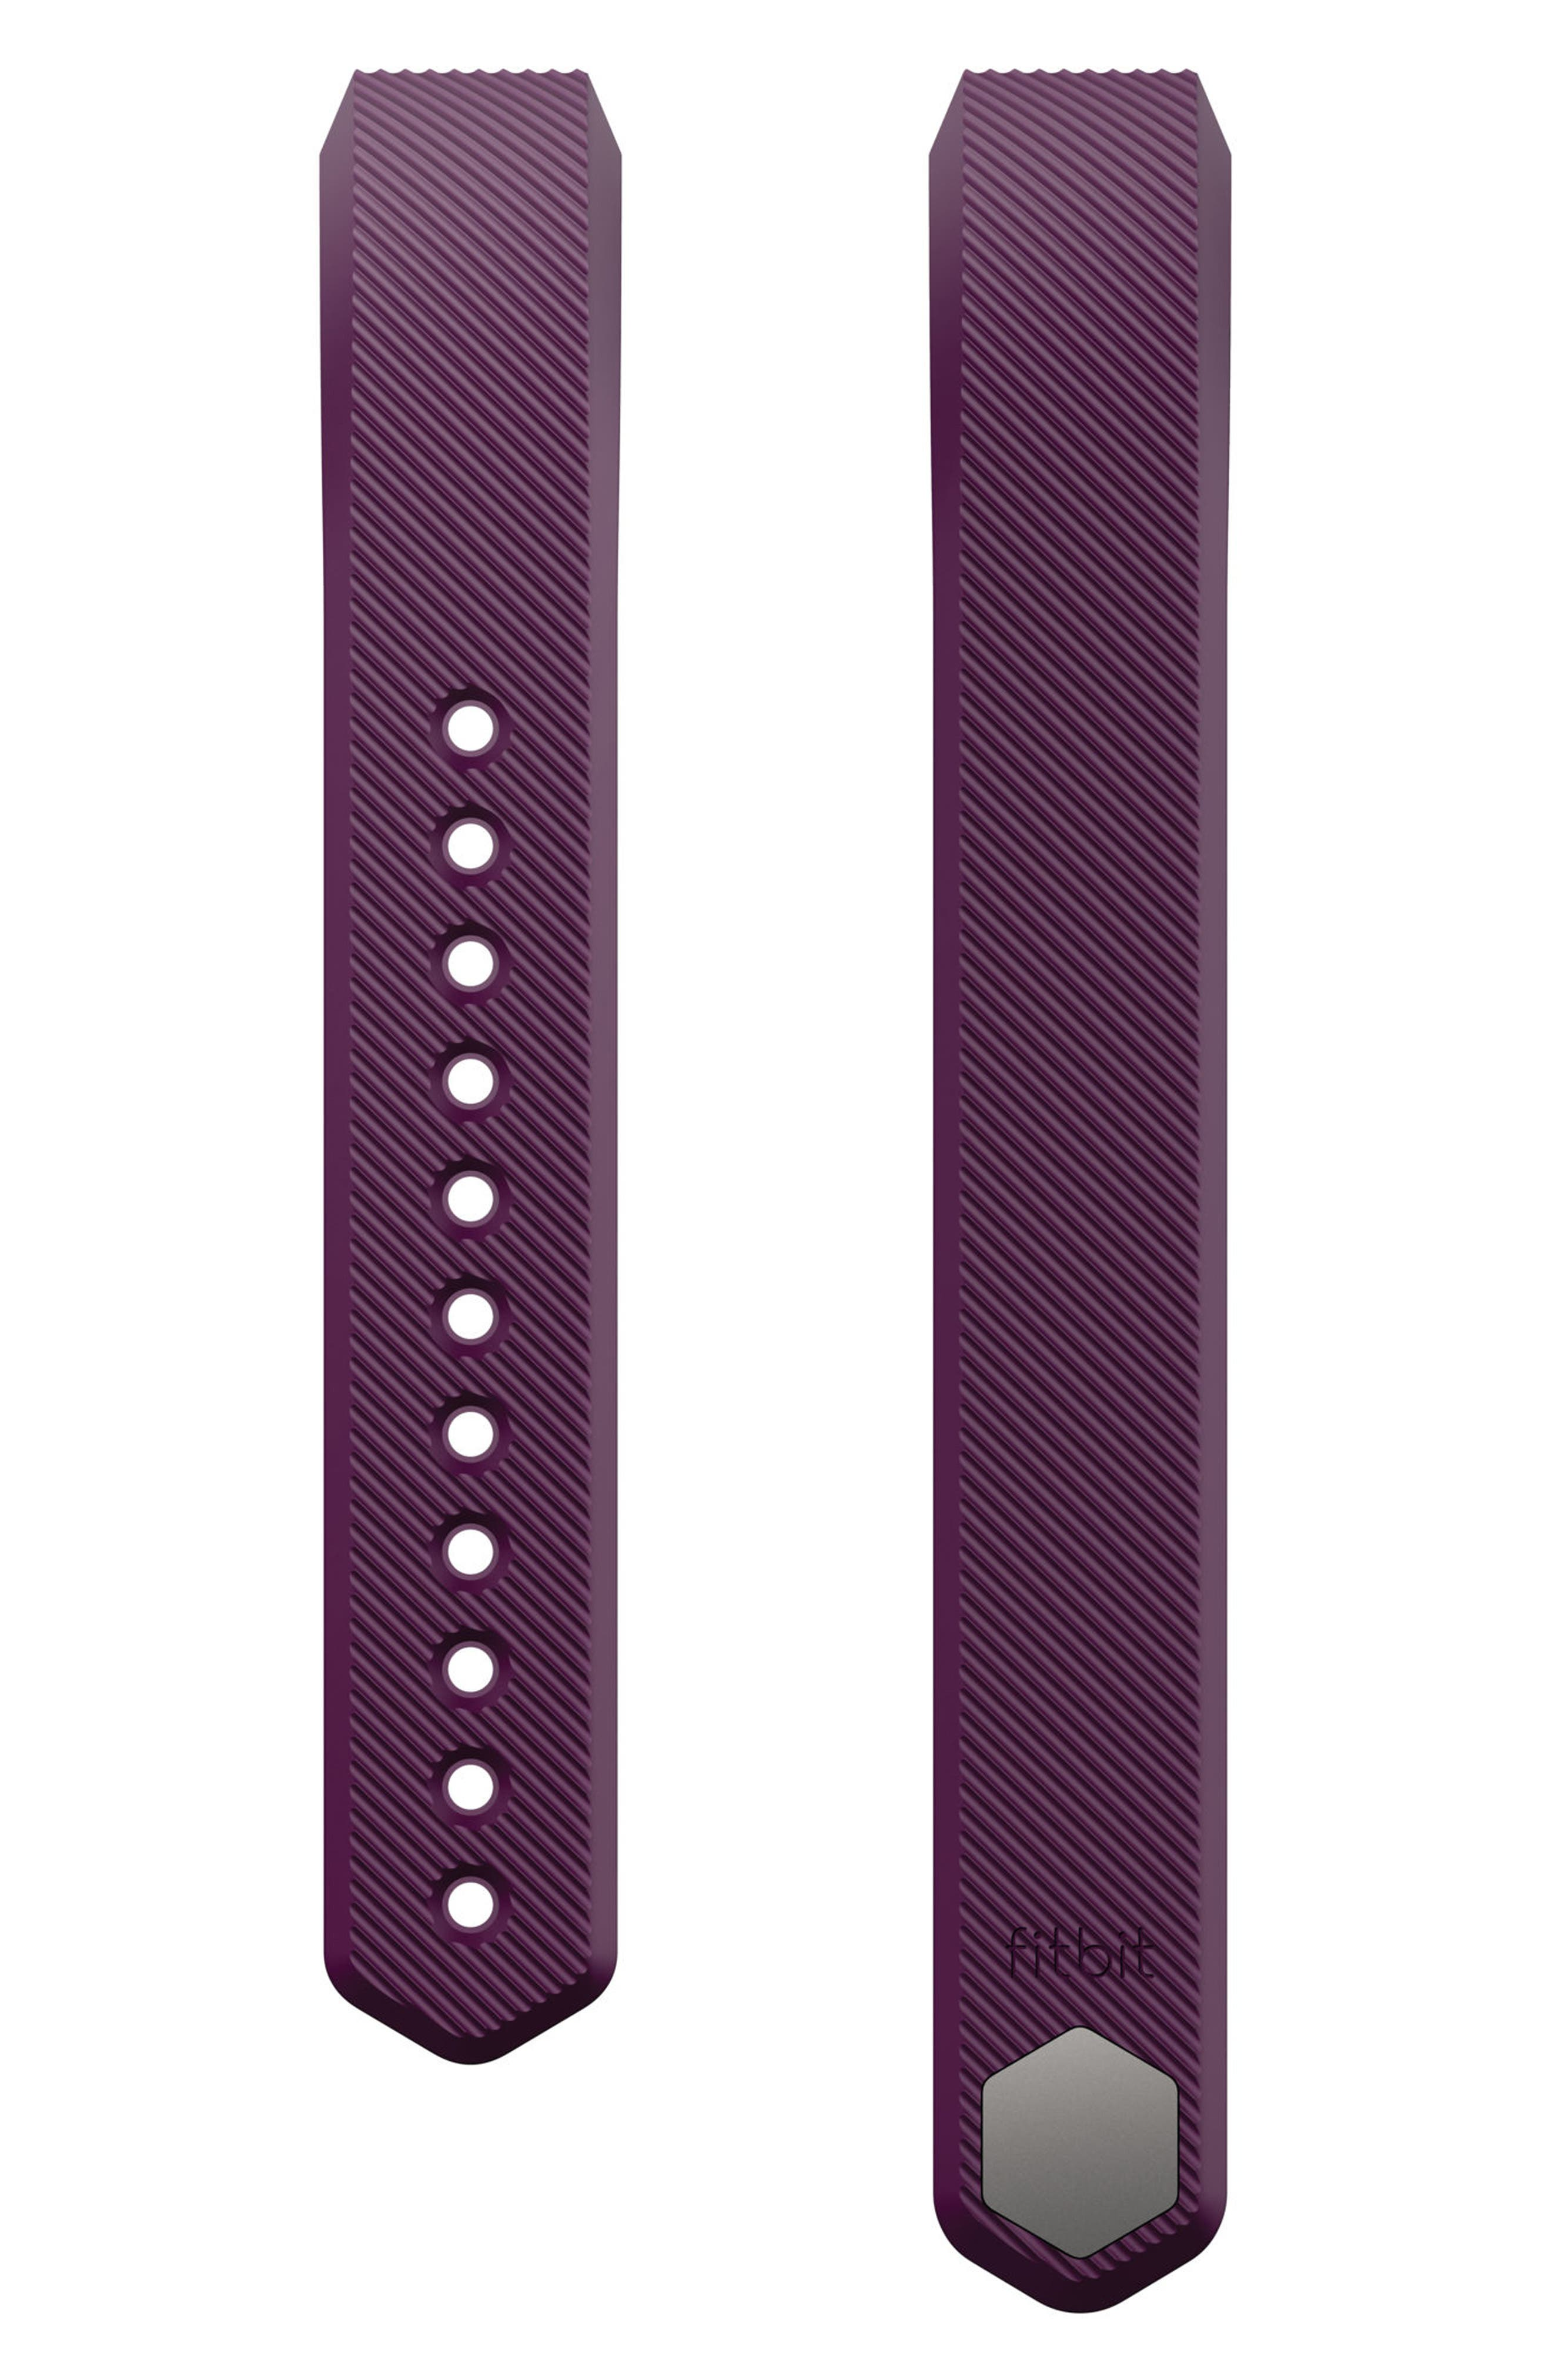 Alternate Image 1 Selected - Fitbit Alta Classic Fitness Watch Band